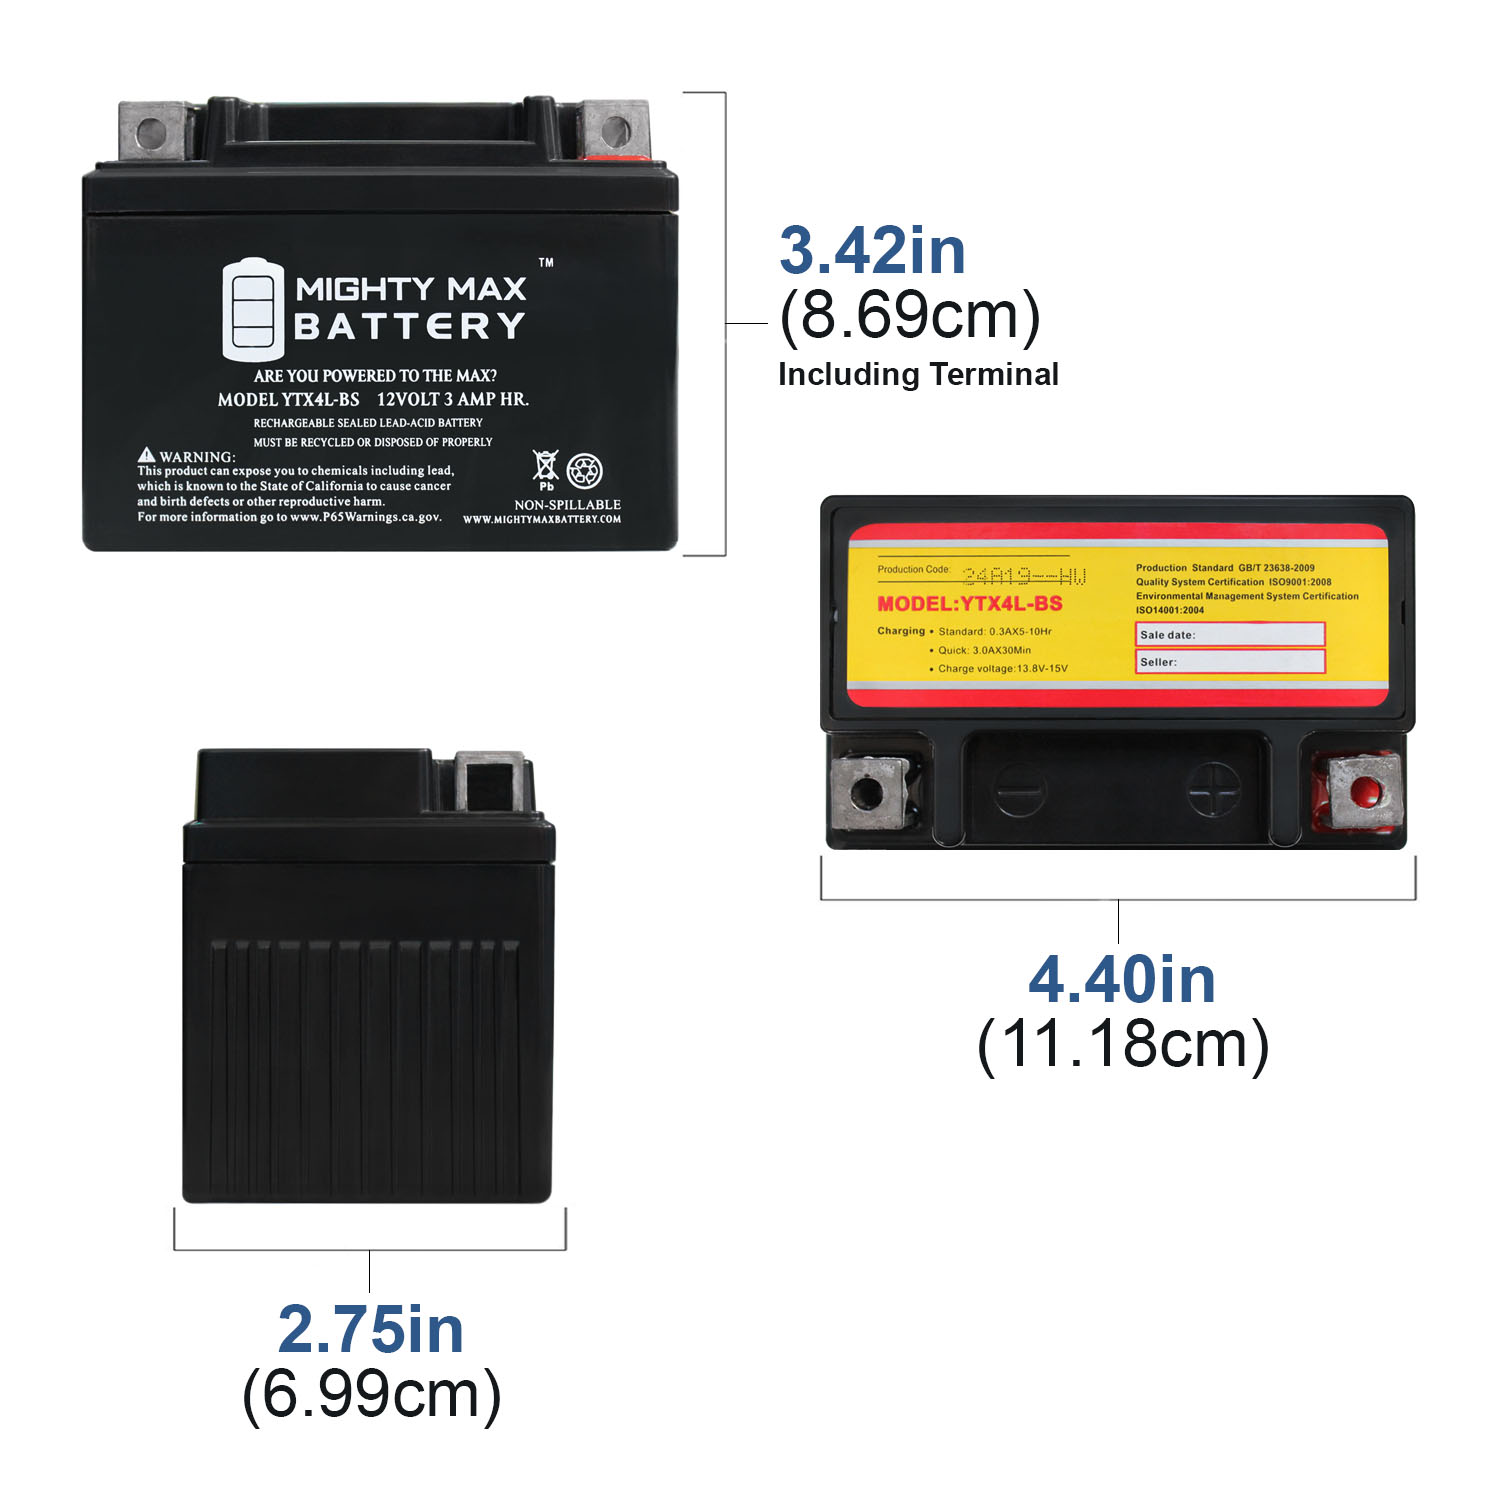 YTX4L-BS 12 VOLT 3AH MOTORCYCLE BATTERY REPLACES YTX4L-BS - 4 PACK - 1